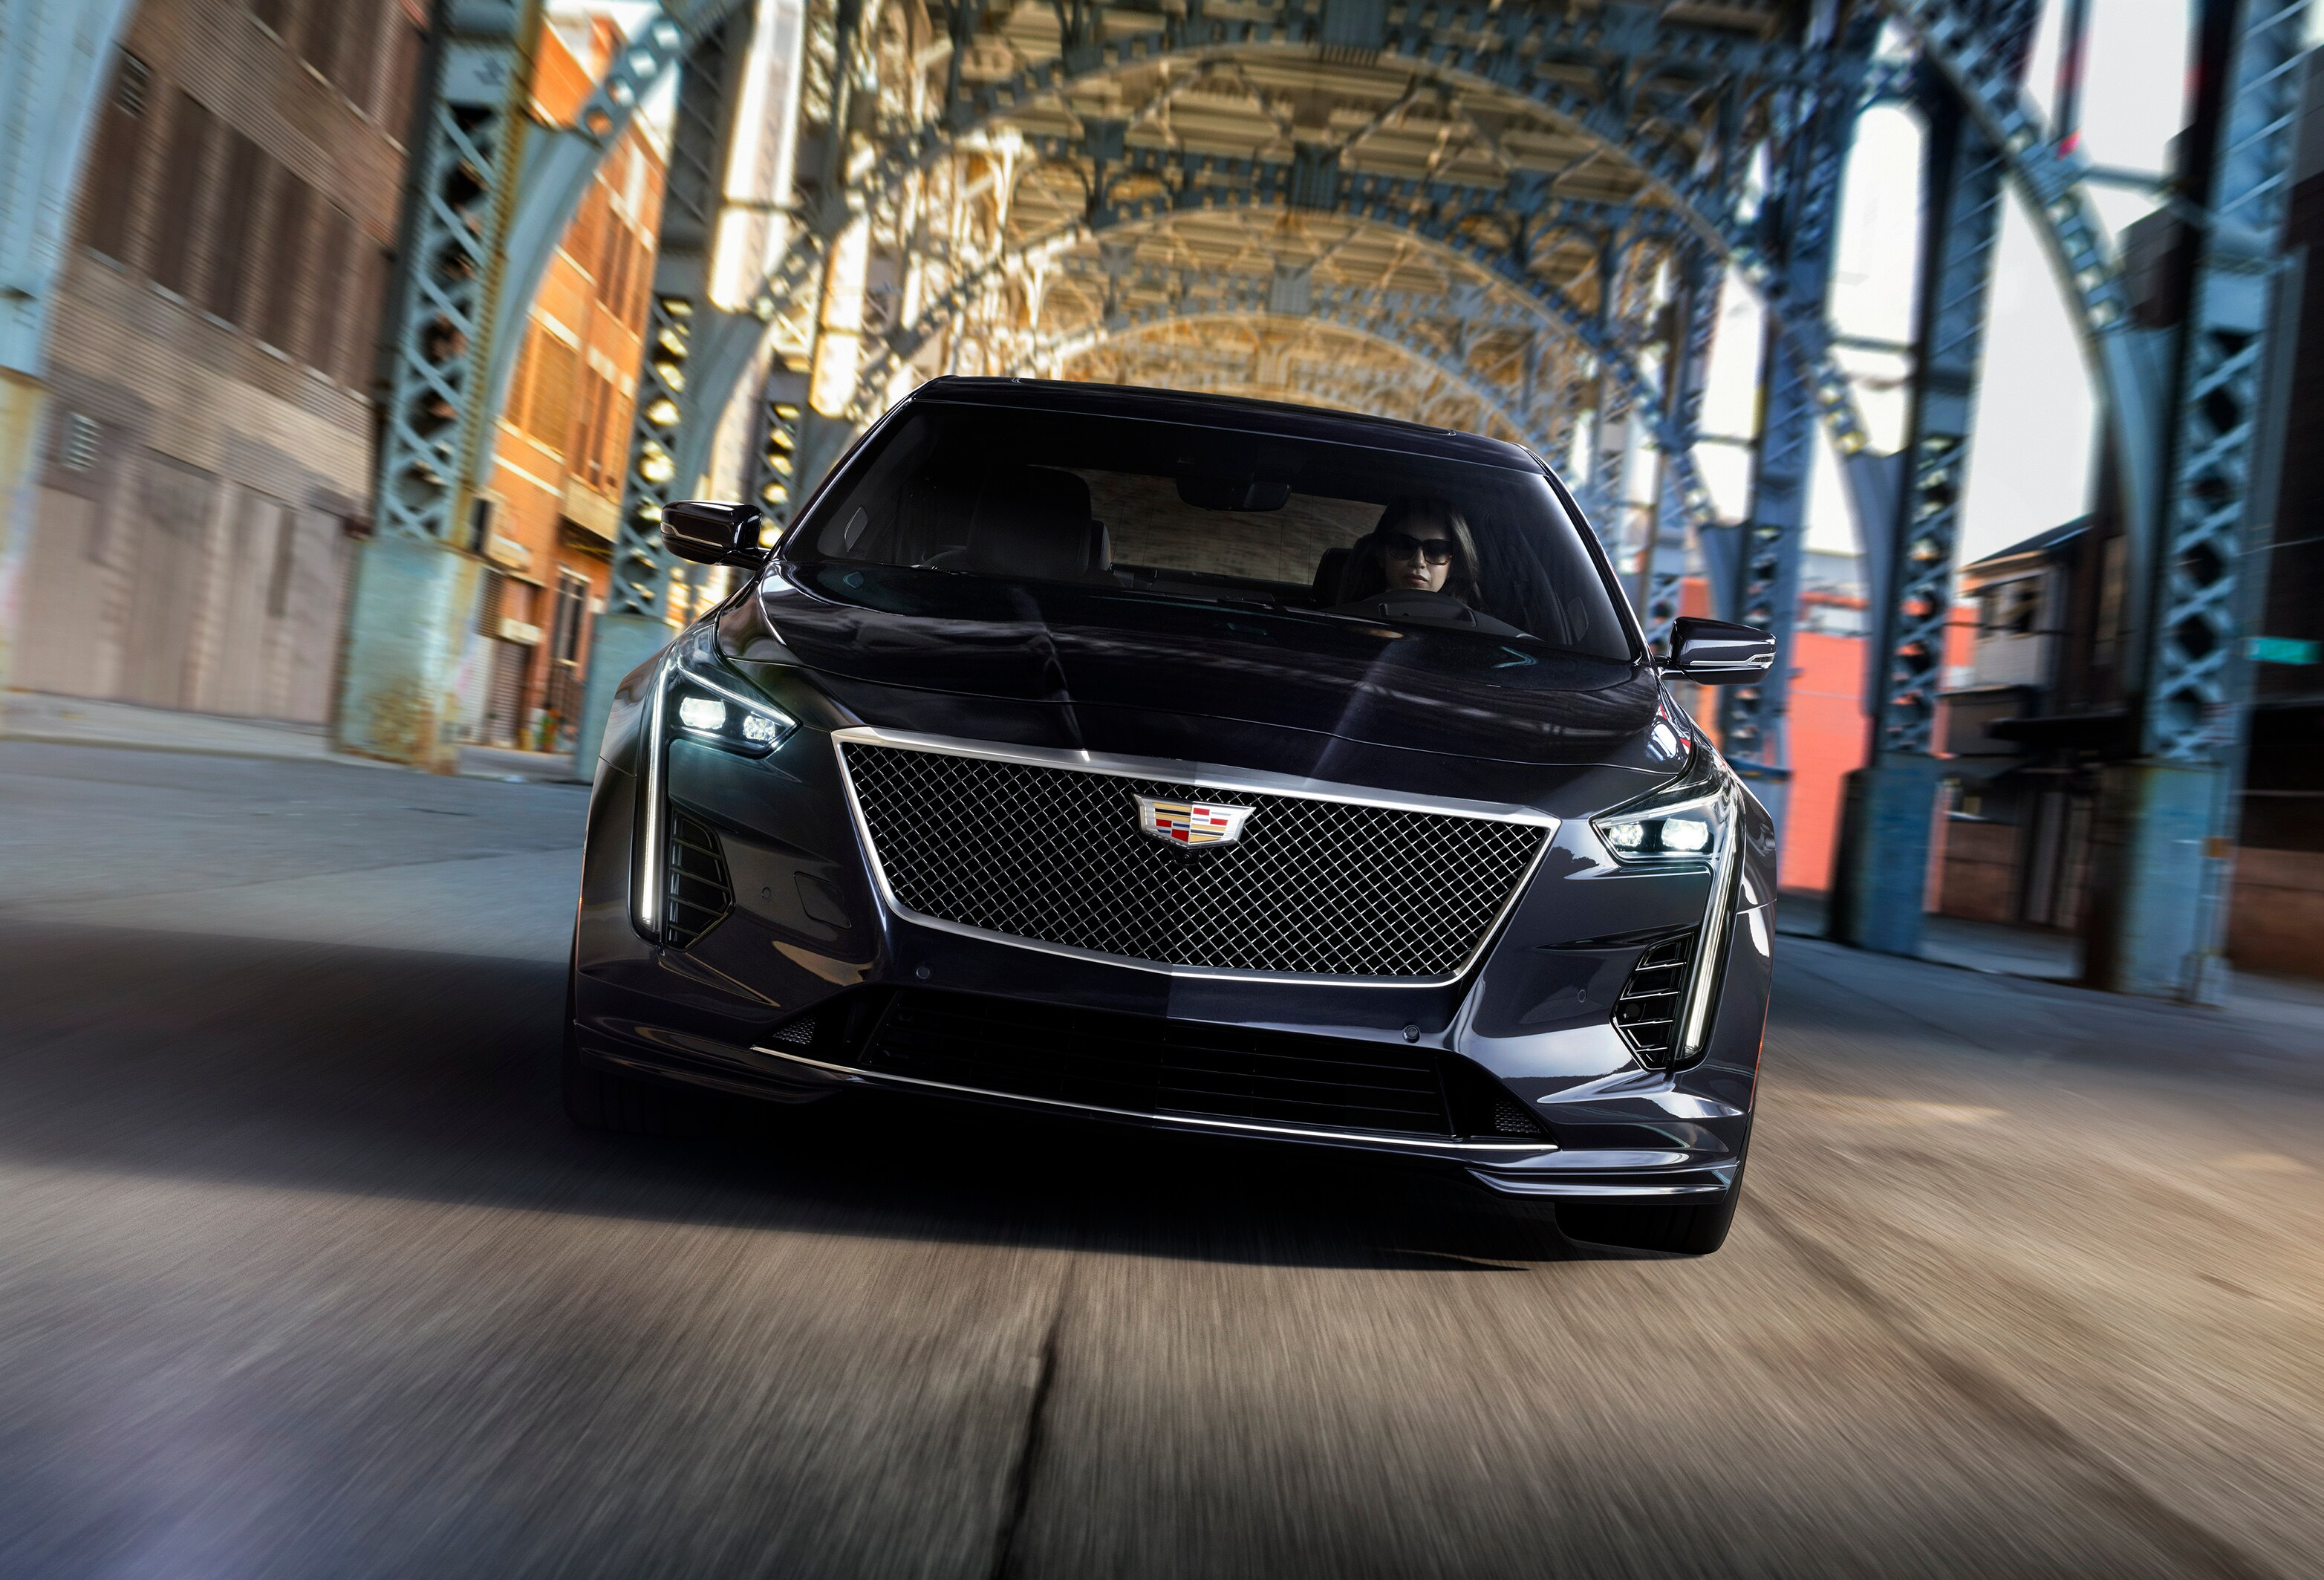 Cadillac CT6 Plug-In modern big